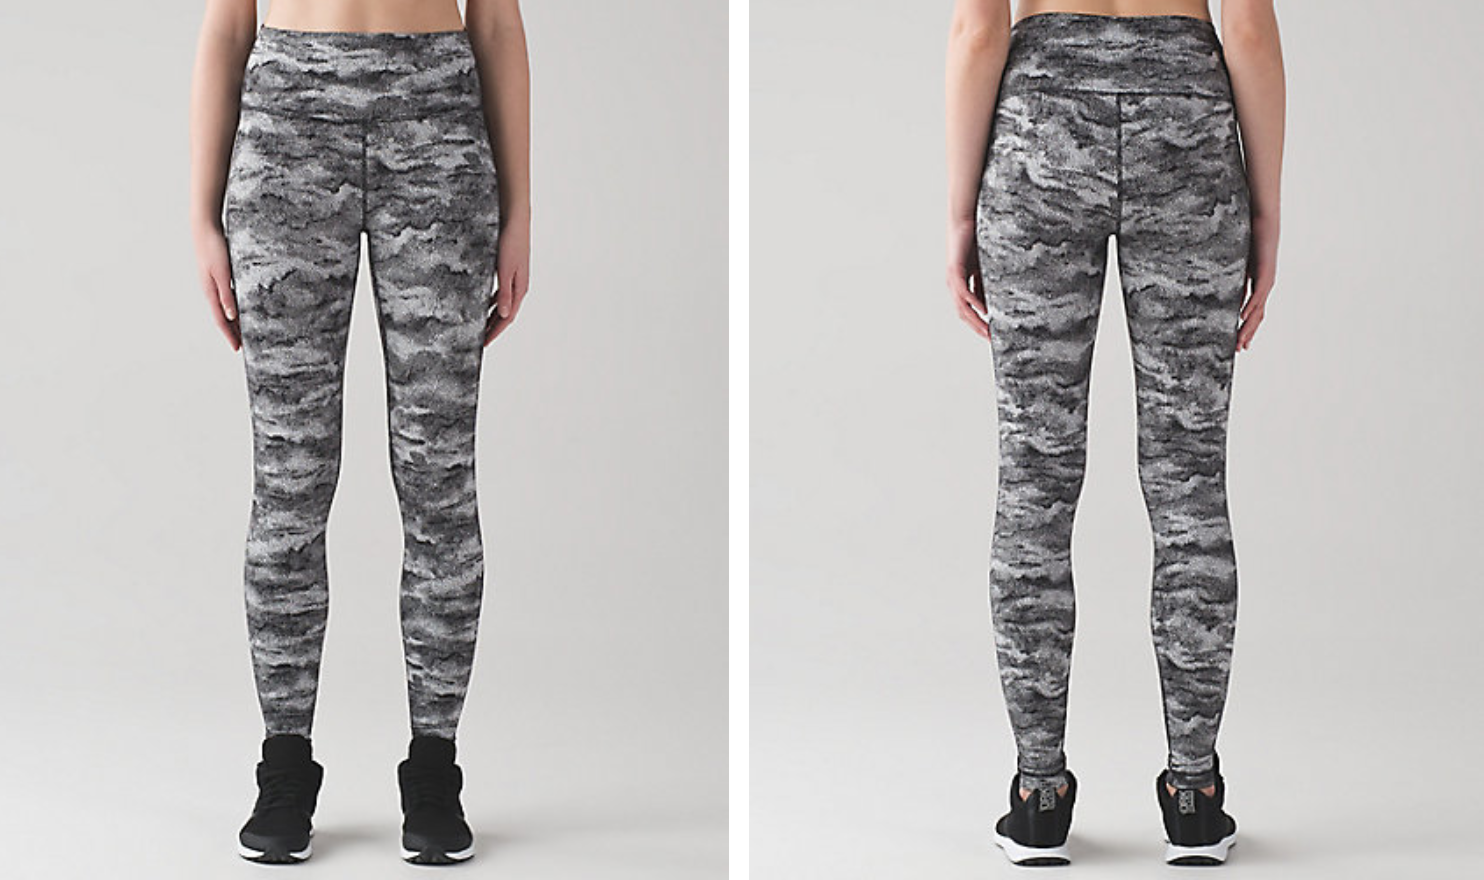 https://api.shopstyle.com/action/apiVisitRetailer?url=https%3A%2F%2Fshop.lululemon.com%2Fp%2Fwomen-pants%2FWunder-Under-HR-Tight%2F_%2Fprod8470075%3Frcnt%3D3%26N%3D1z13ziiZ7z5%26cnt%3D58%26color%3DLW5AQ1S_028927&site=www.shopstyle.ca&pid=uid6784-25288972-7